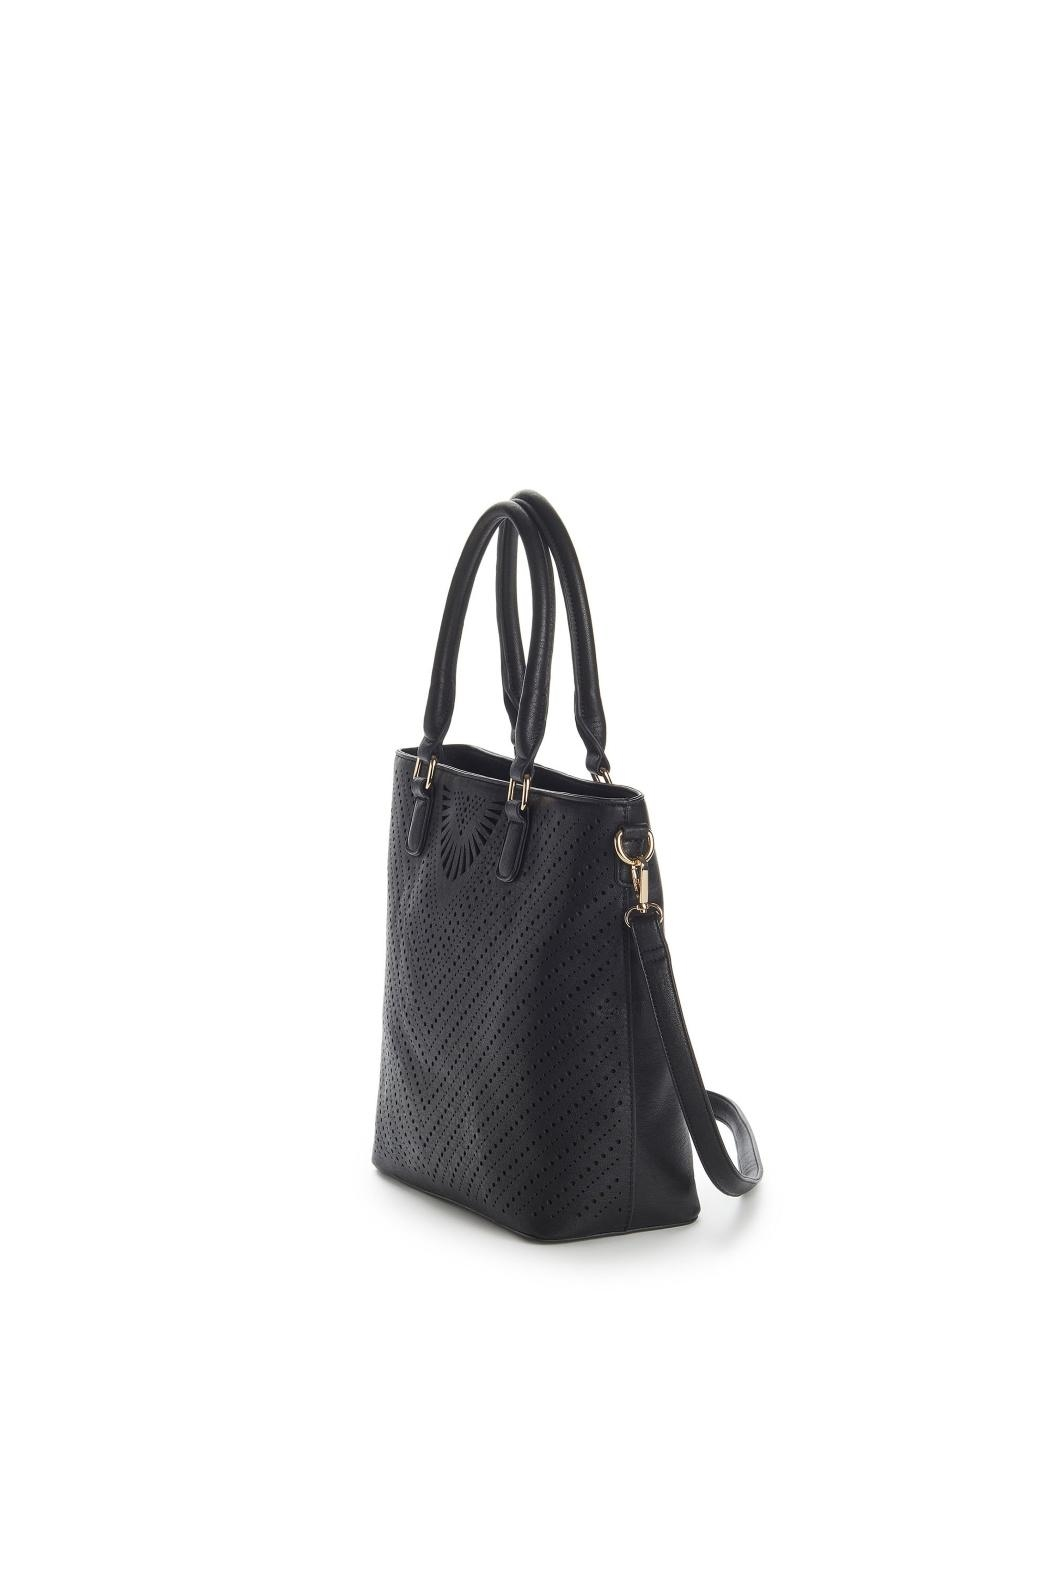 Jeane & Jax Stacy Perforated Tote - Side Cropped Image